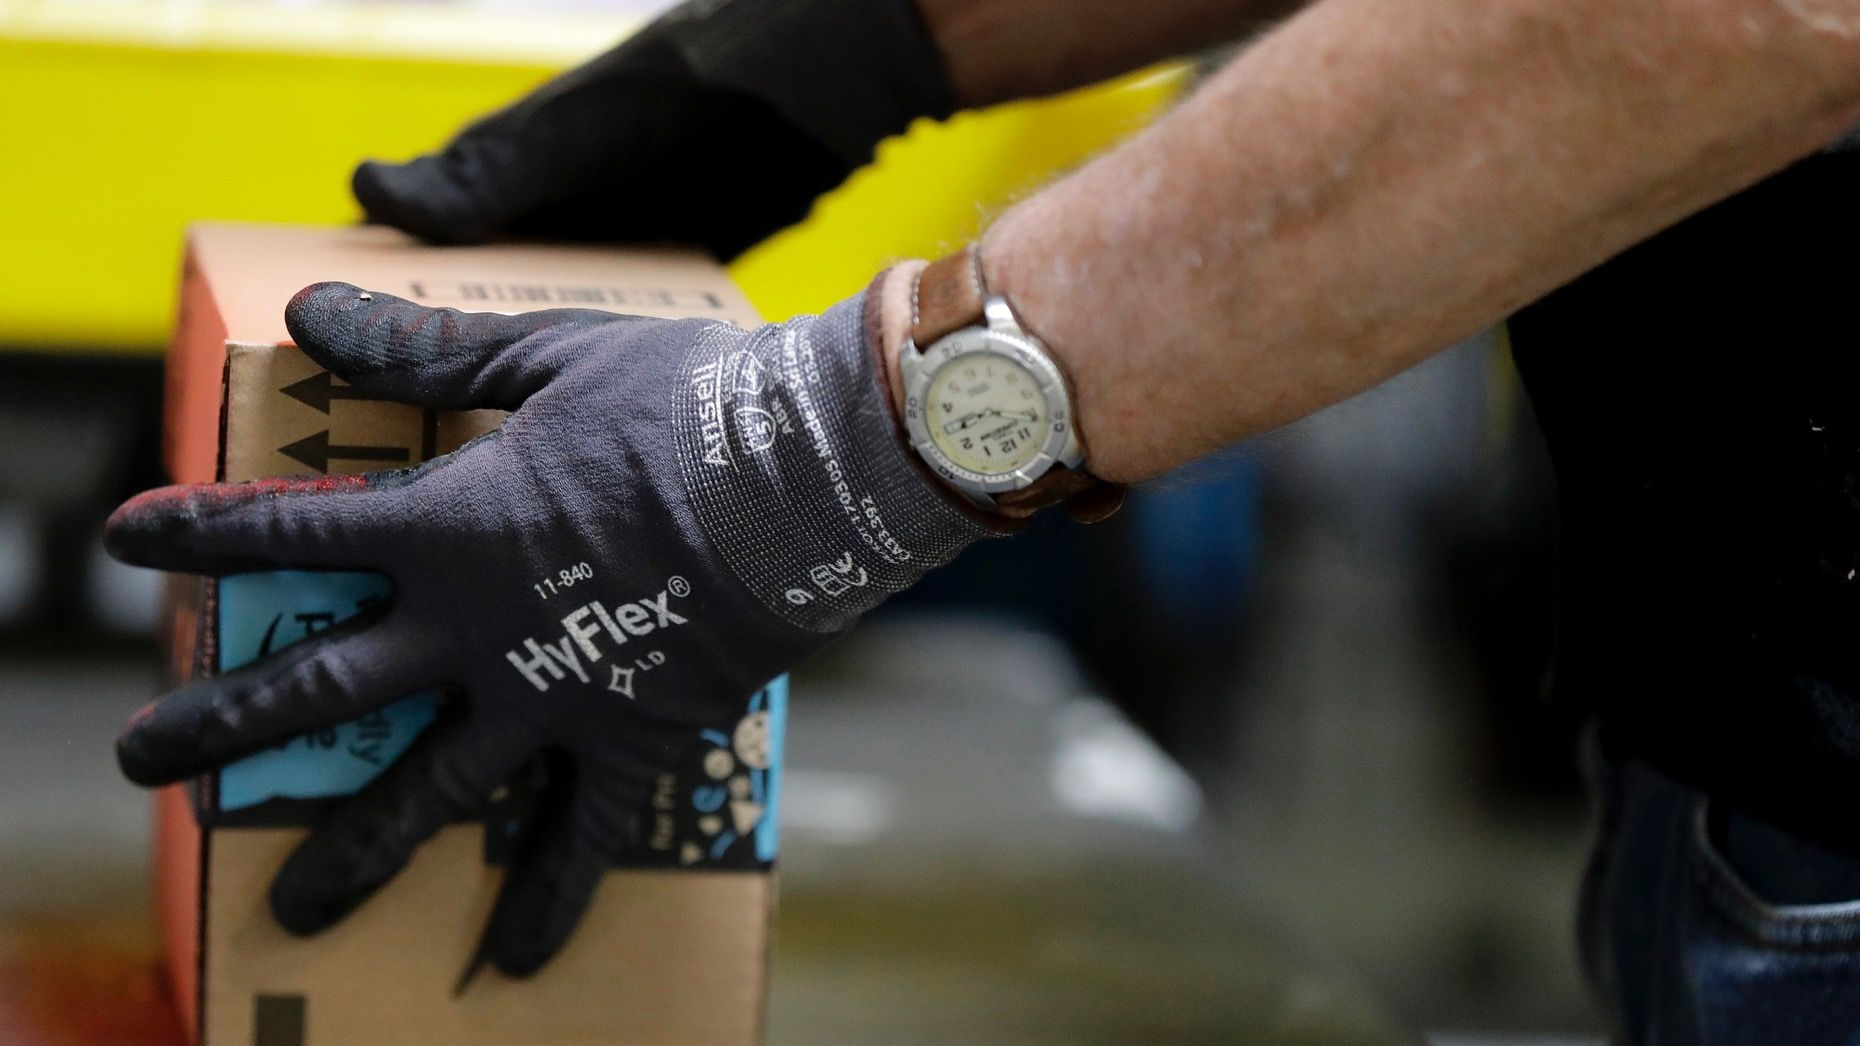 An employee packages a product at the Amazon Fulfillment center in Robbinsville Township, N.J. Photo: AP